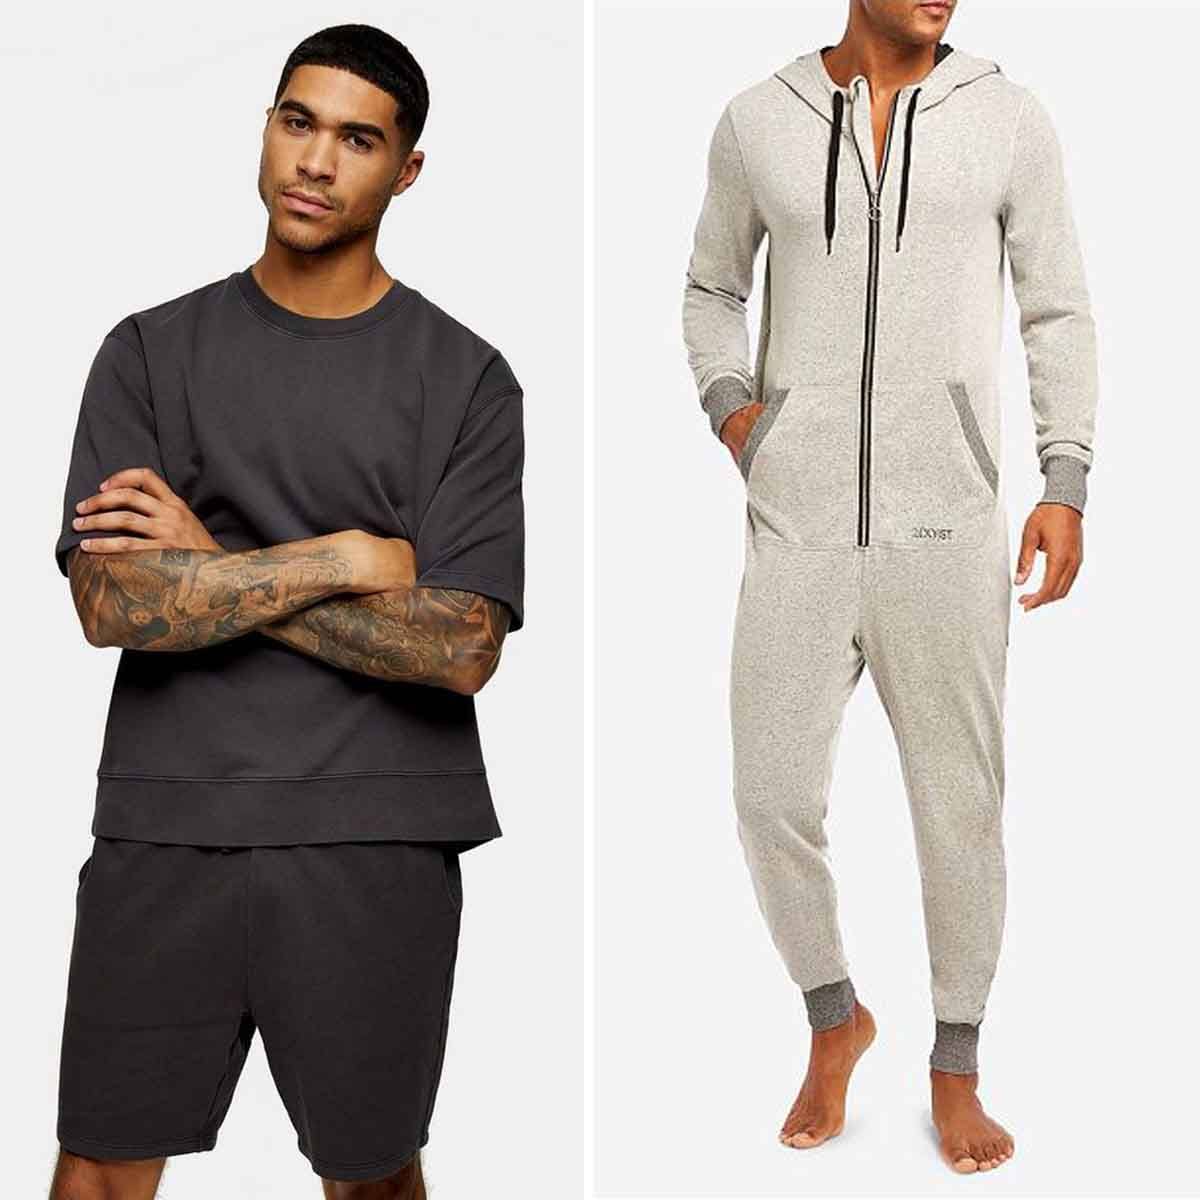 Indian men loungewear athleisure Co-ords